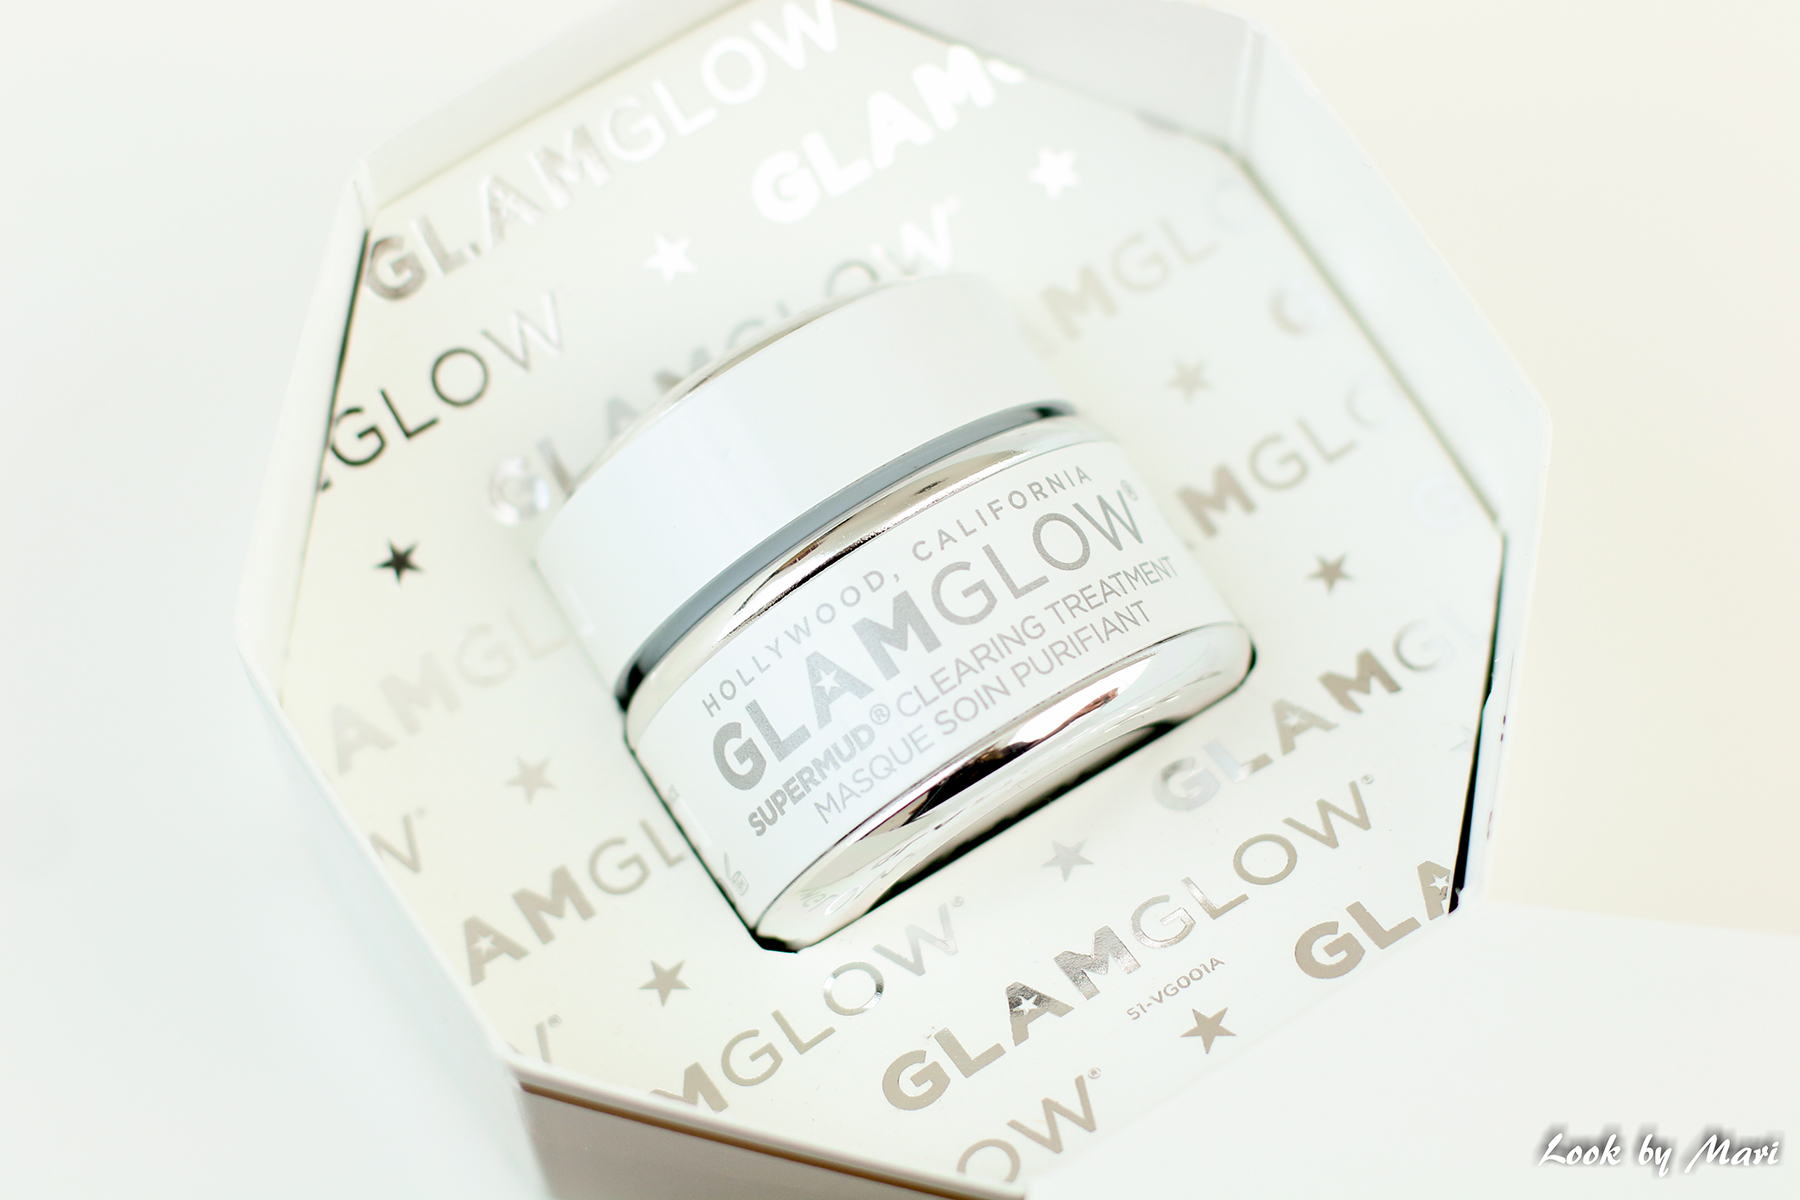 9 glamglow supermud clearing treatment 15g 30g 50g price